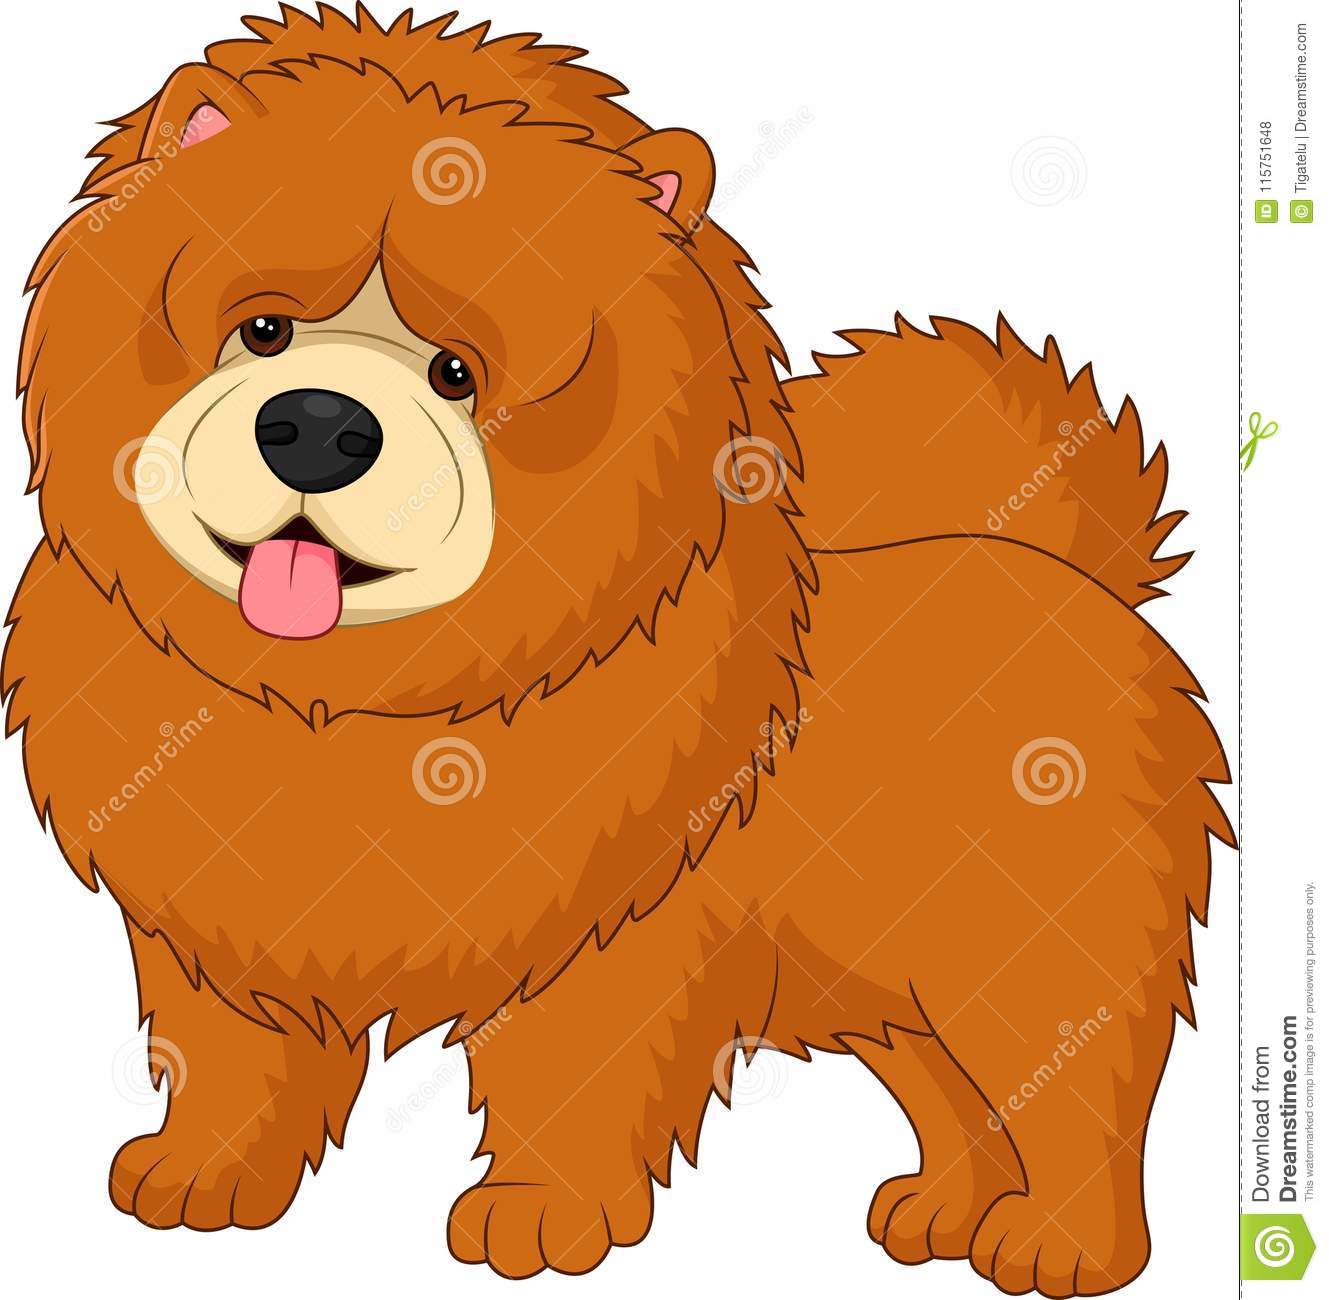 Chow Chow Dog Breed Stock Vector Illustration Of Adorable 115751648